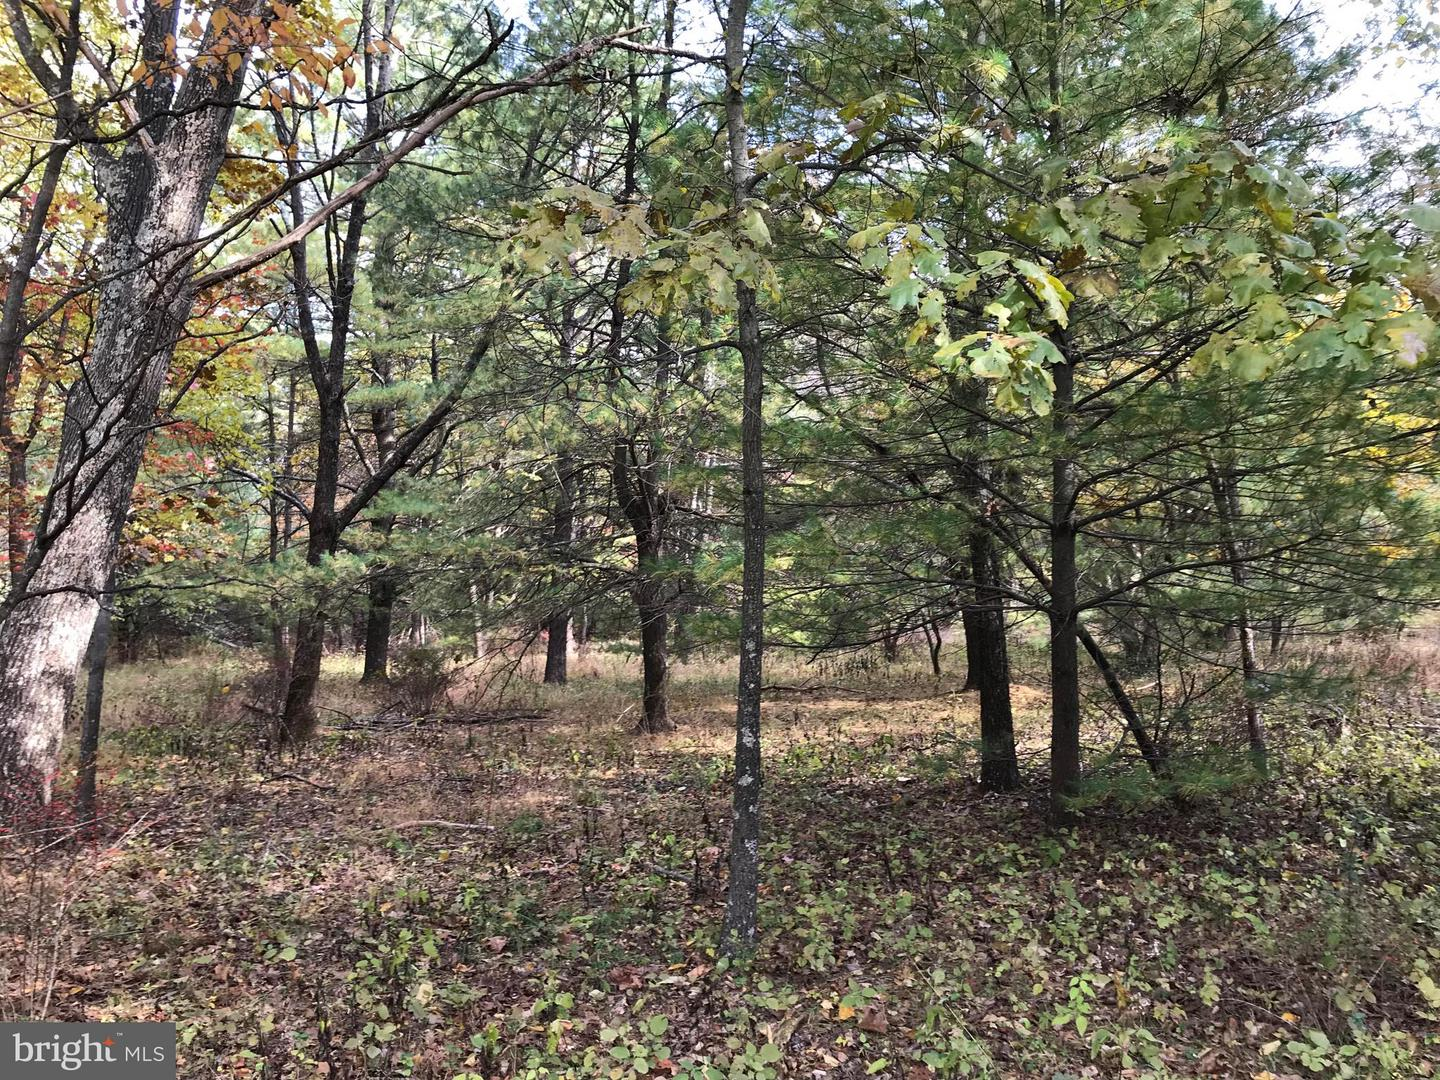 Land for Sale at Corls Ridge Rd South Mountain, Pennsylvania 17261 United States